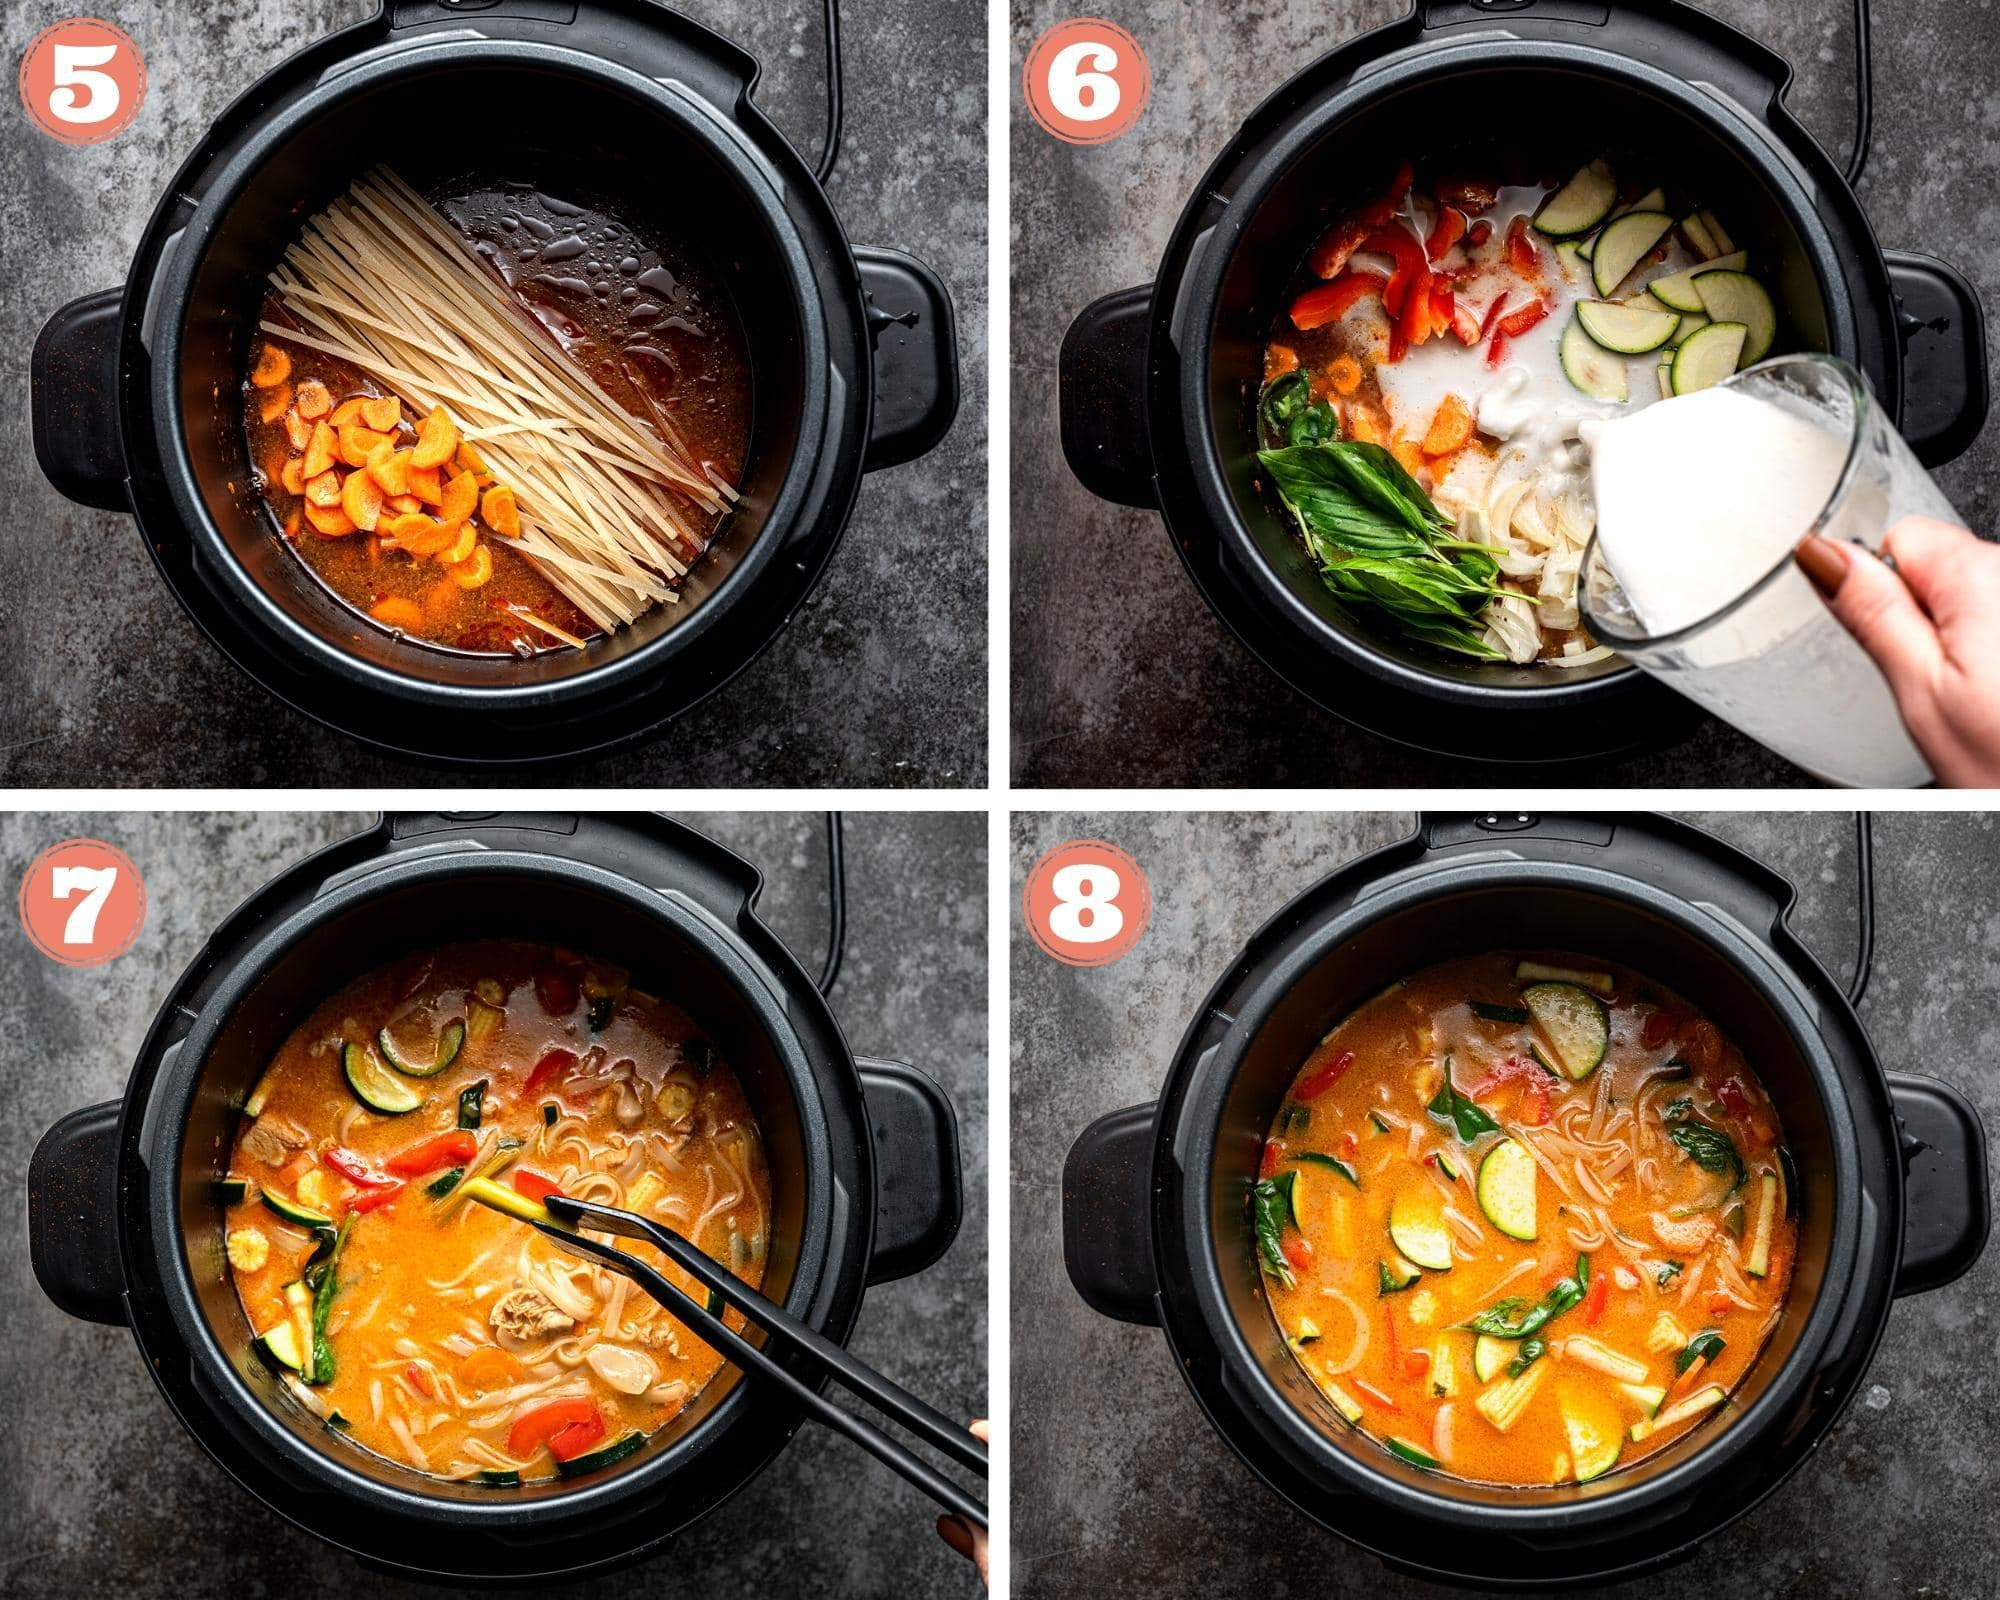 Adding noodles and vegetables to the Instant Pot